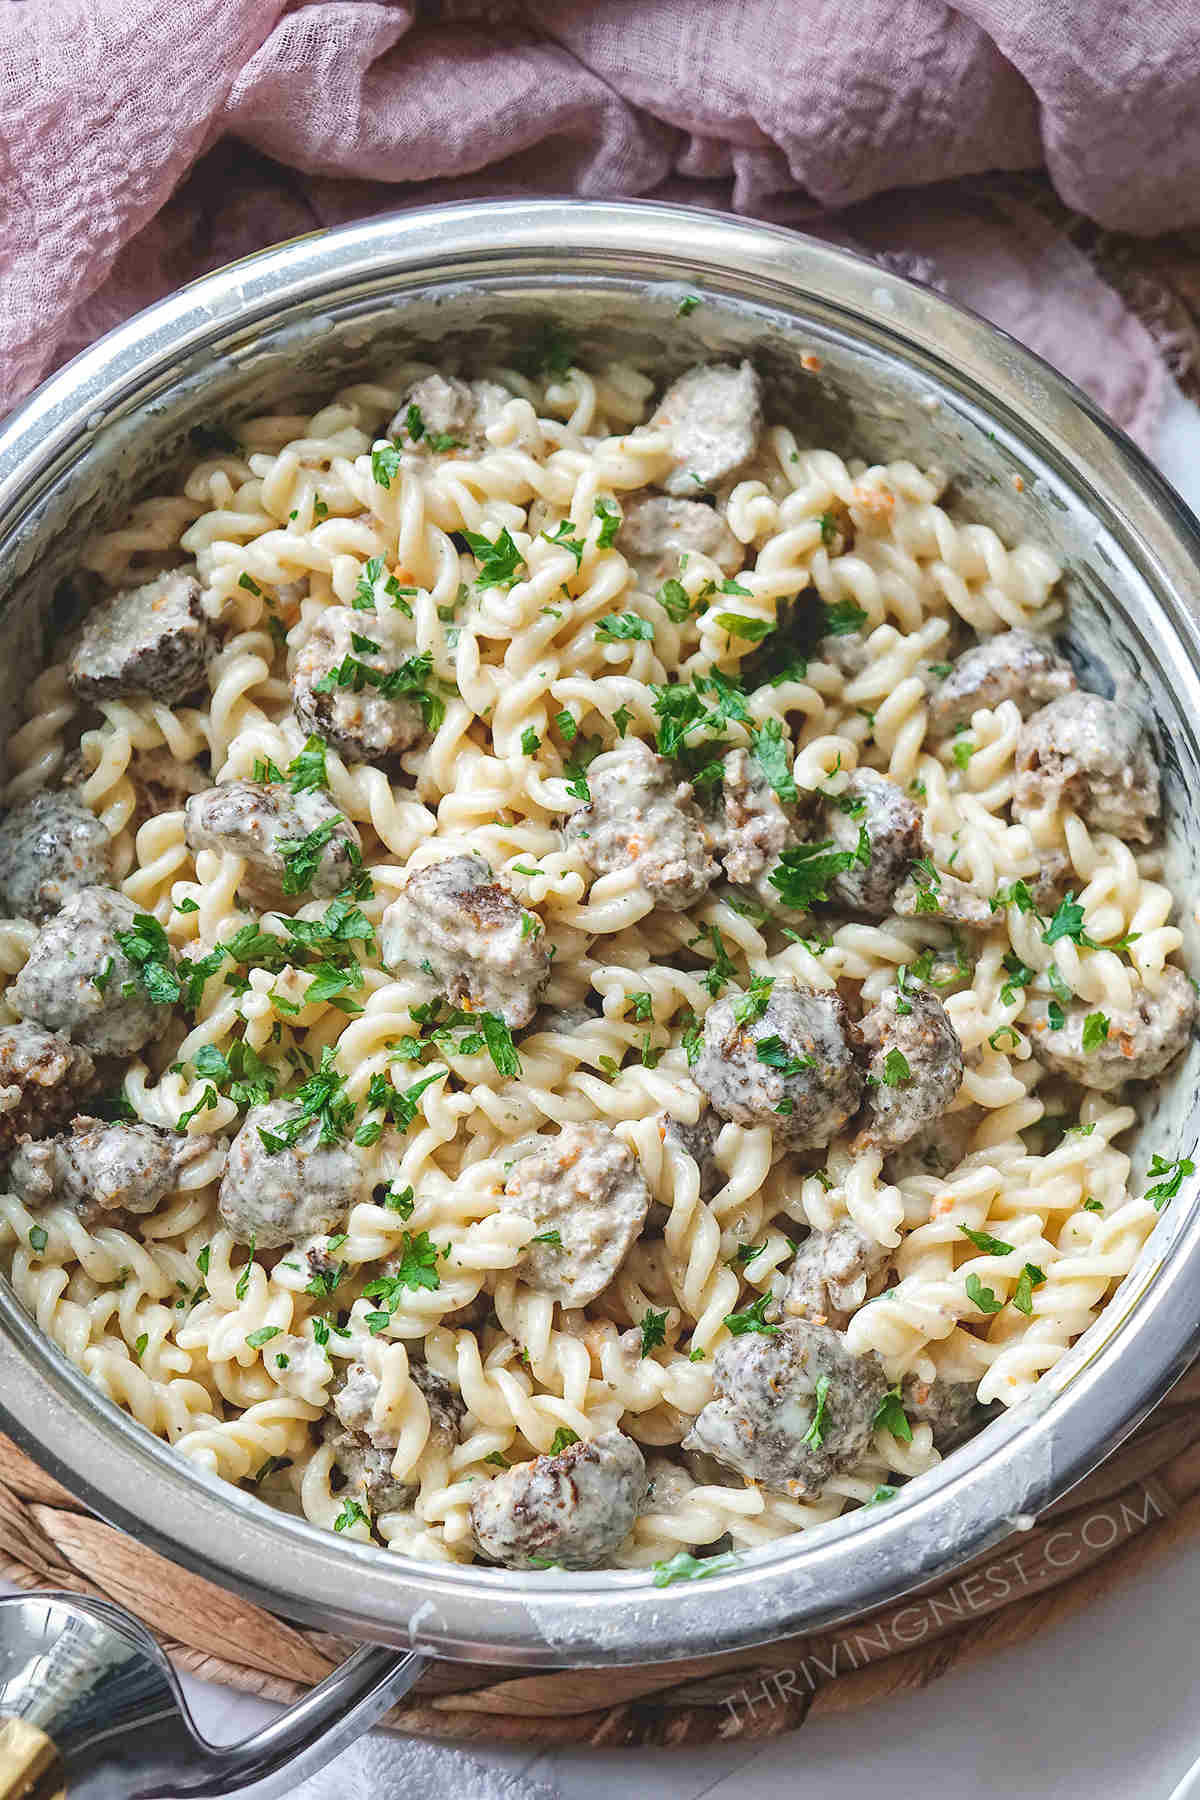 Beef meatballs for baby plus pasta tossed in a white creamy sauce.